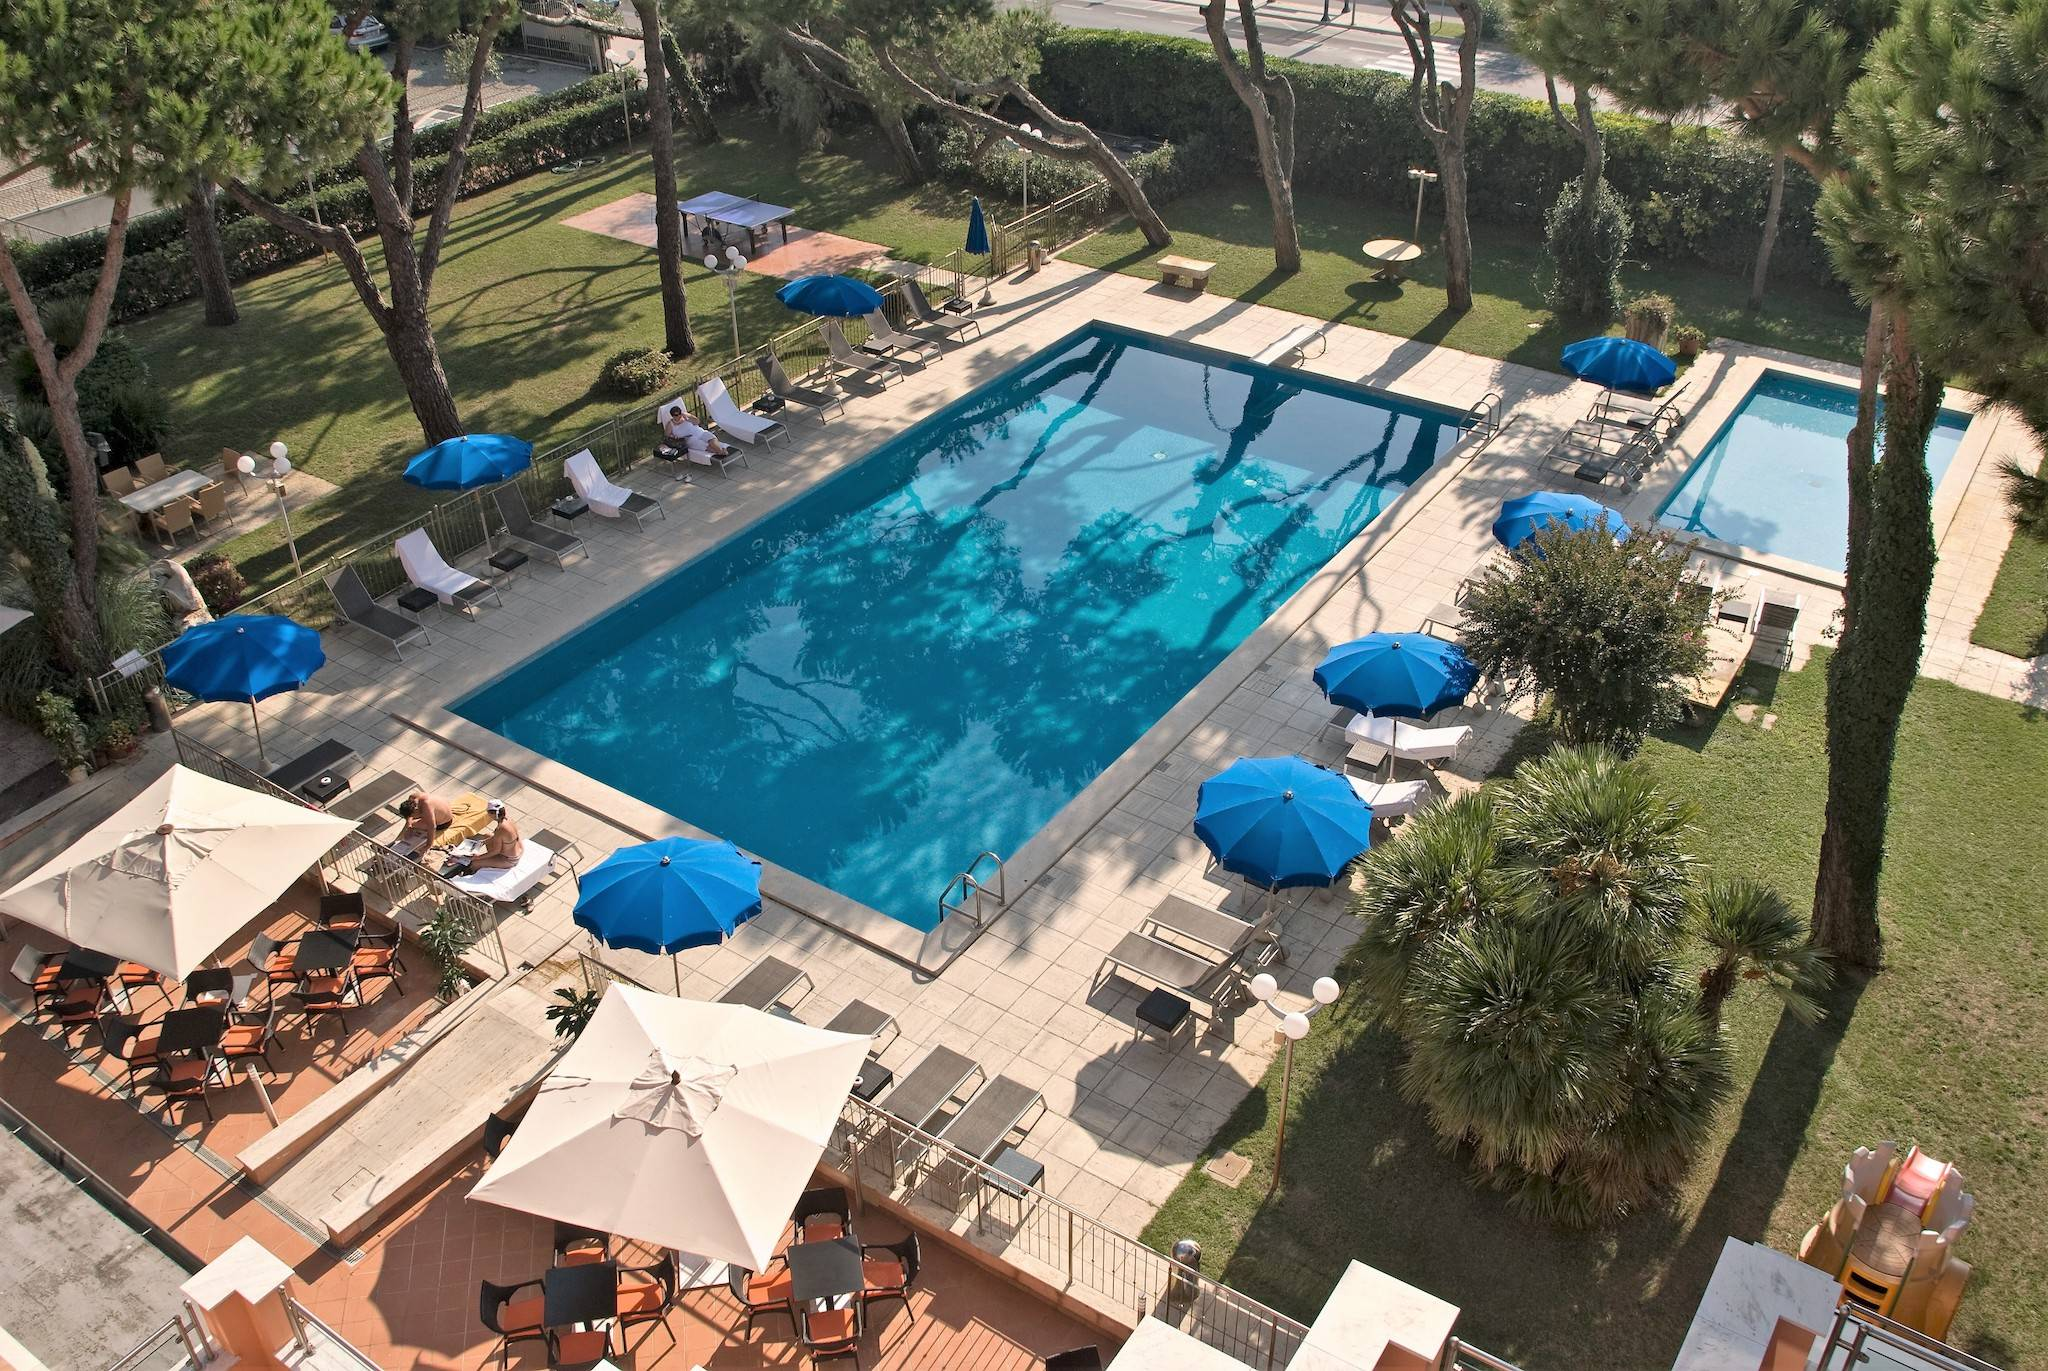 Versillia Palace Hotel Ariel View of Pool